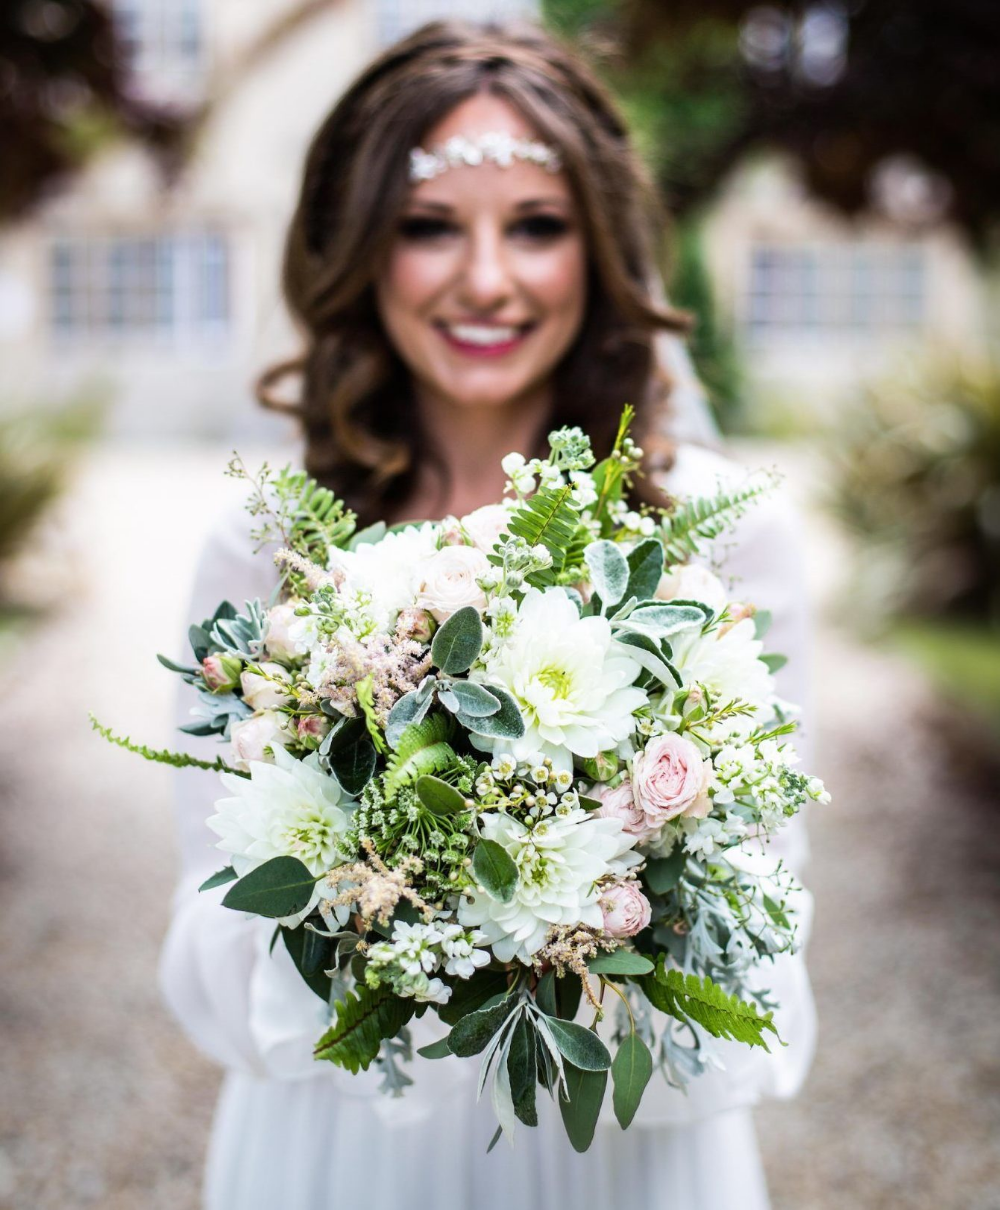 5 Wedding Flower Trends For 2020 Wedding Flower Guide Wedding